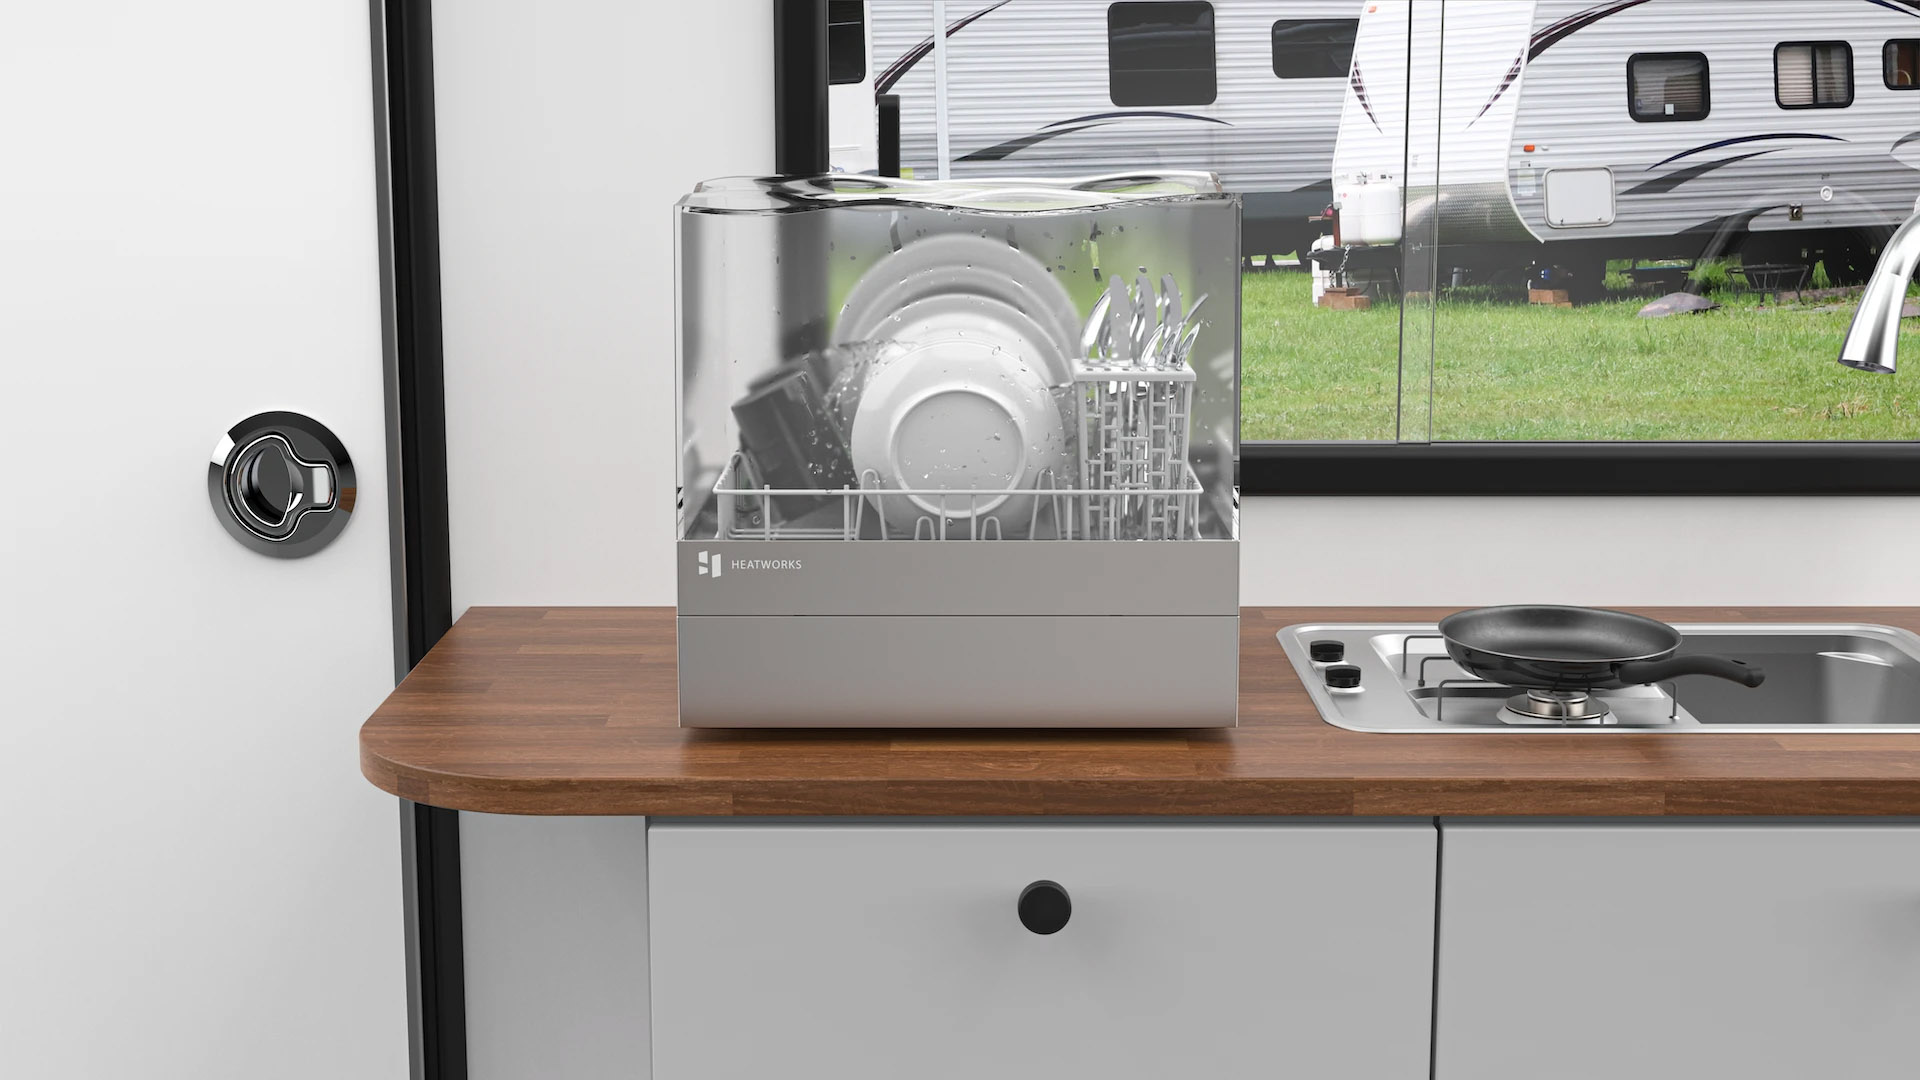 Heatworks Tetra Connected Countertop Dishwasher